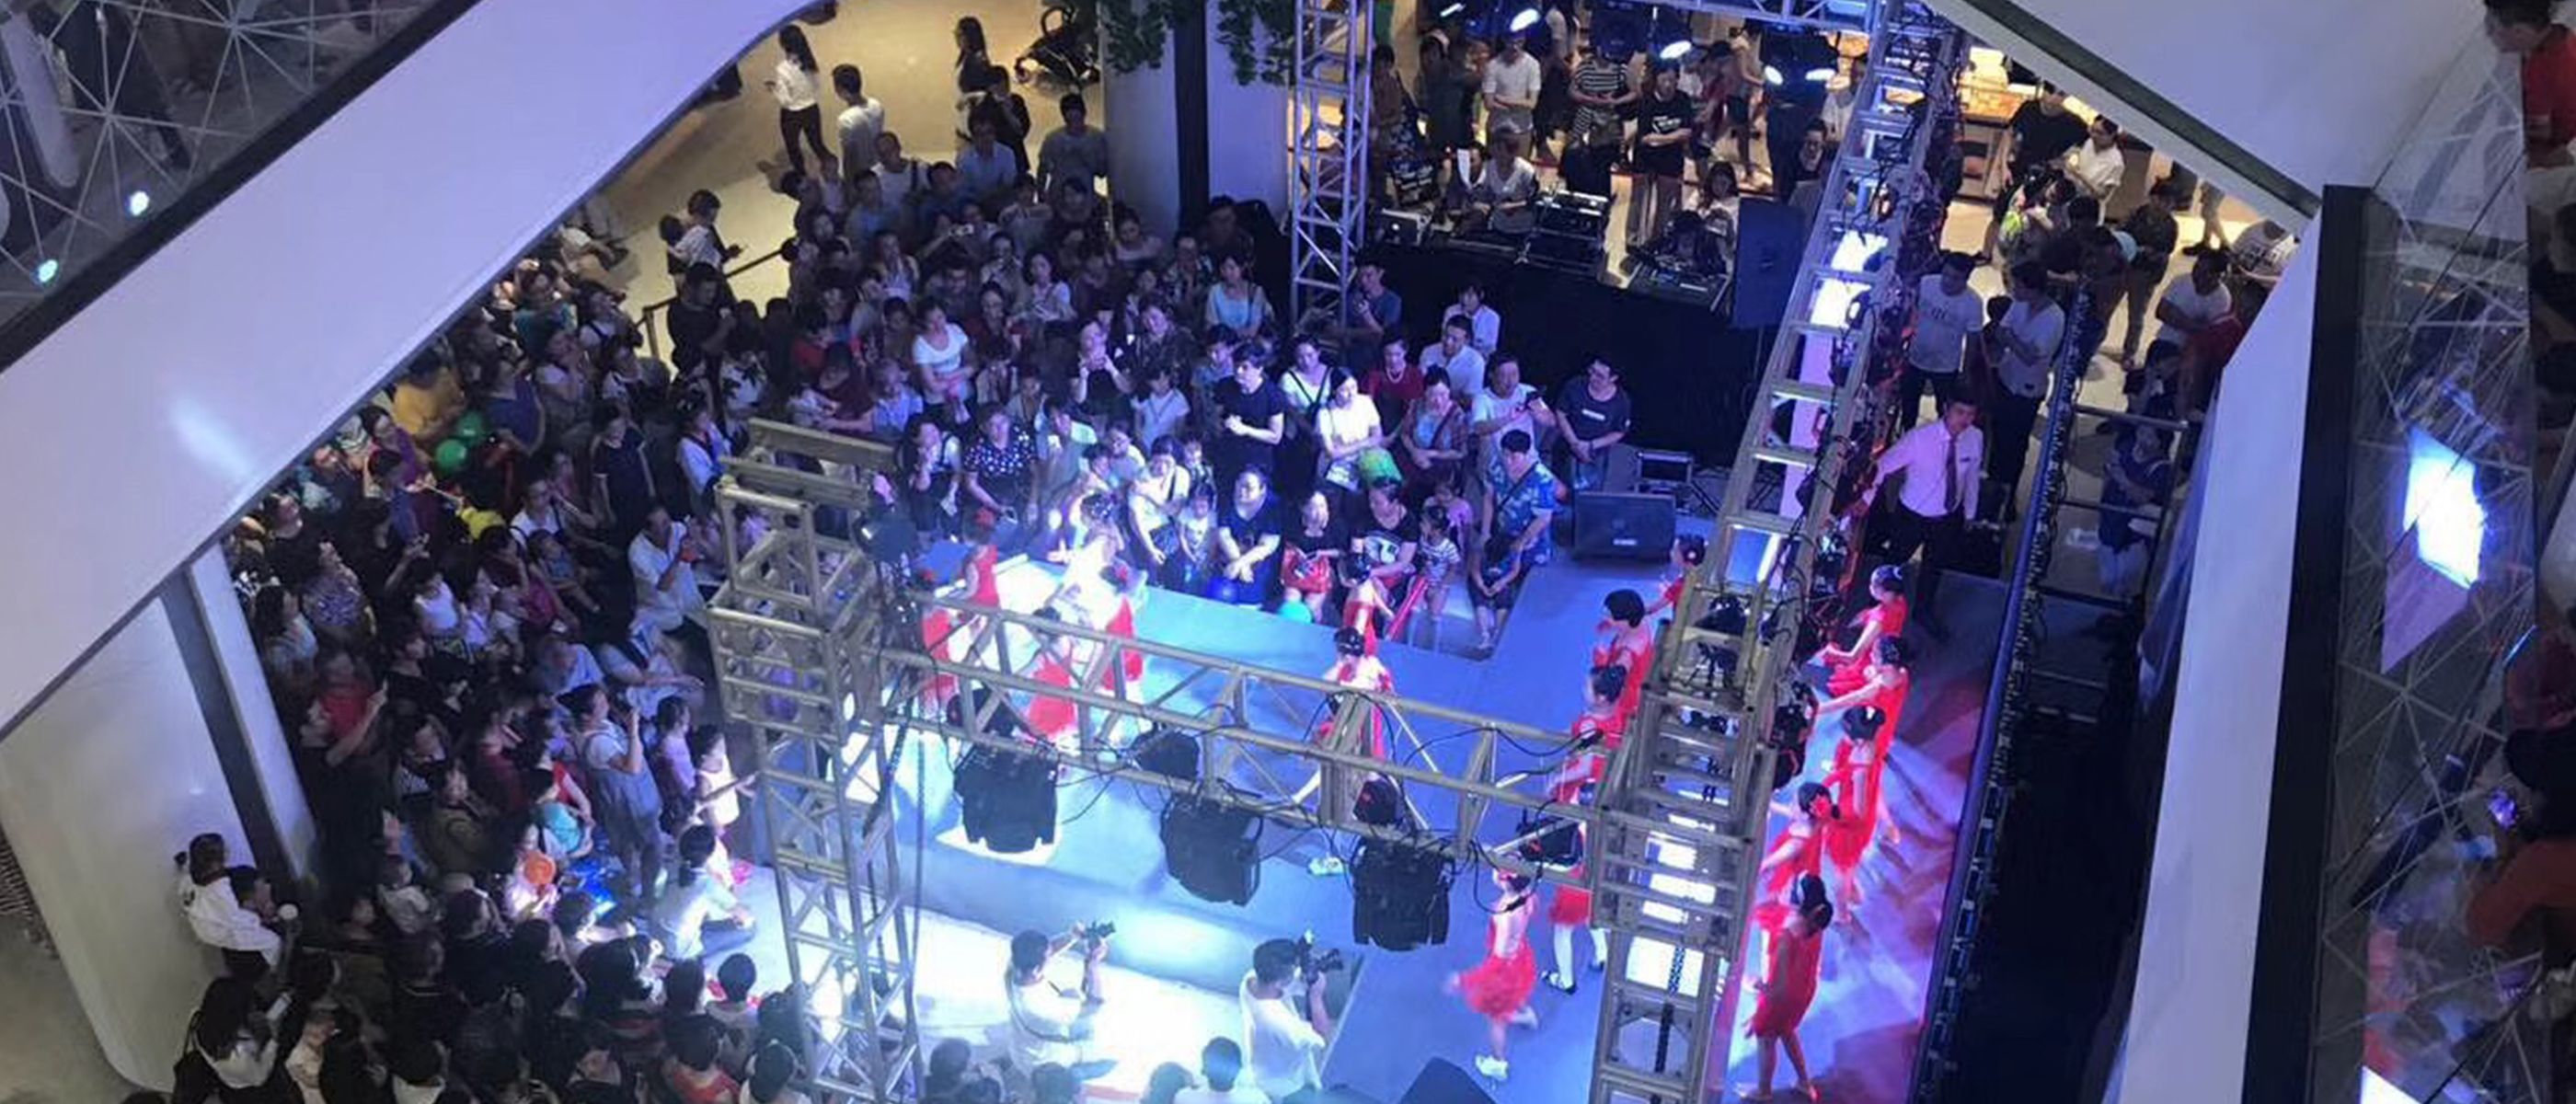 Performance at the mall